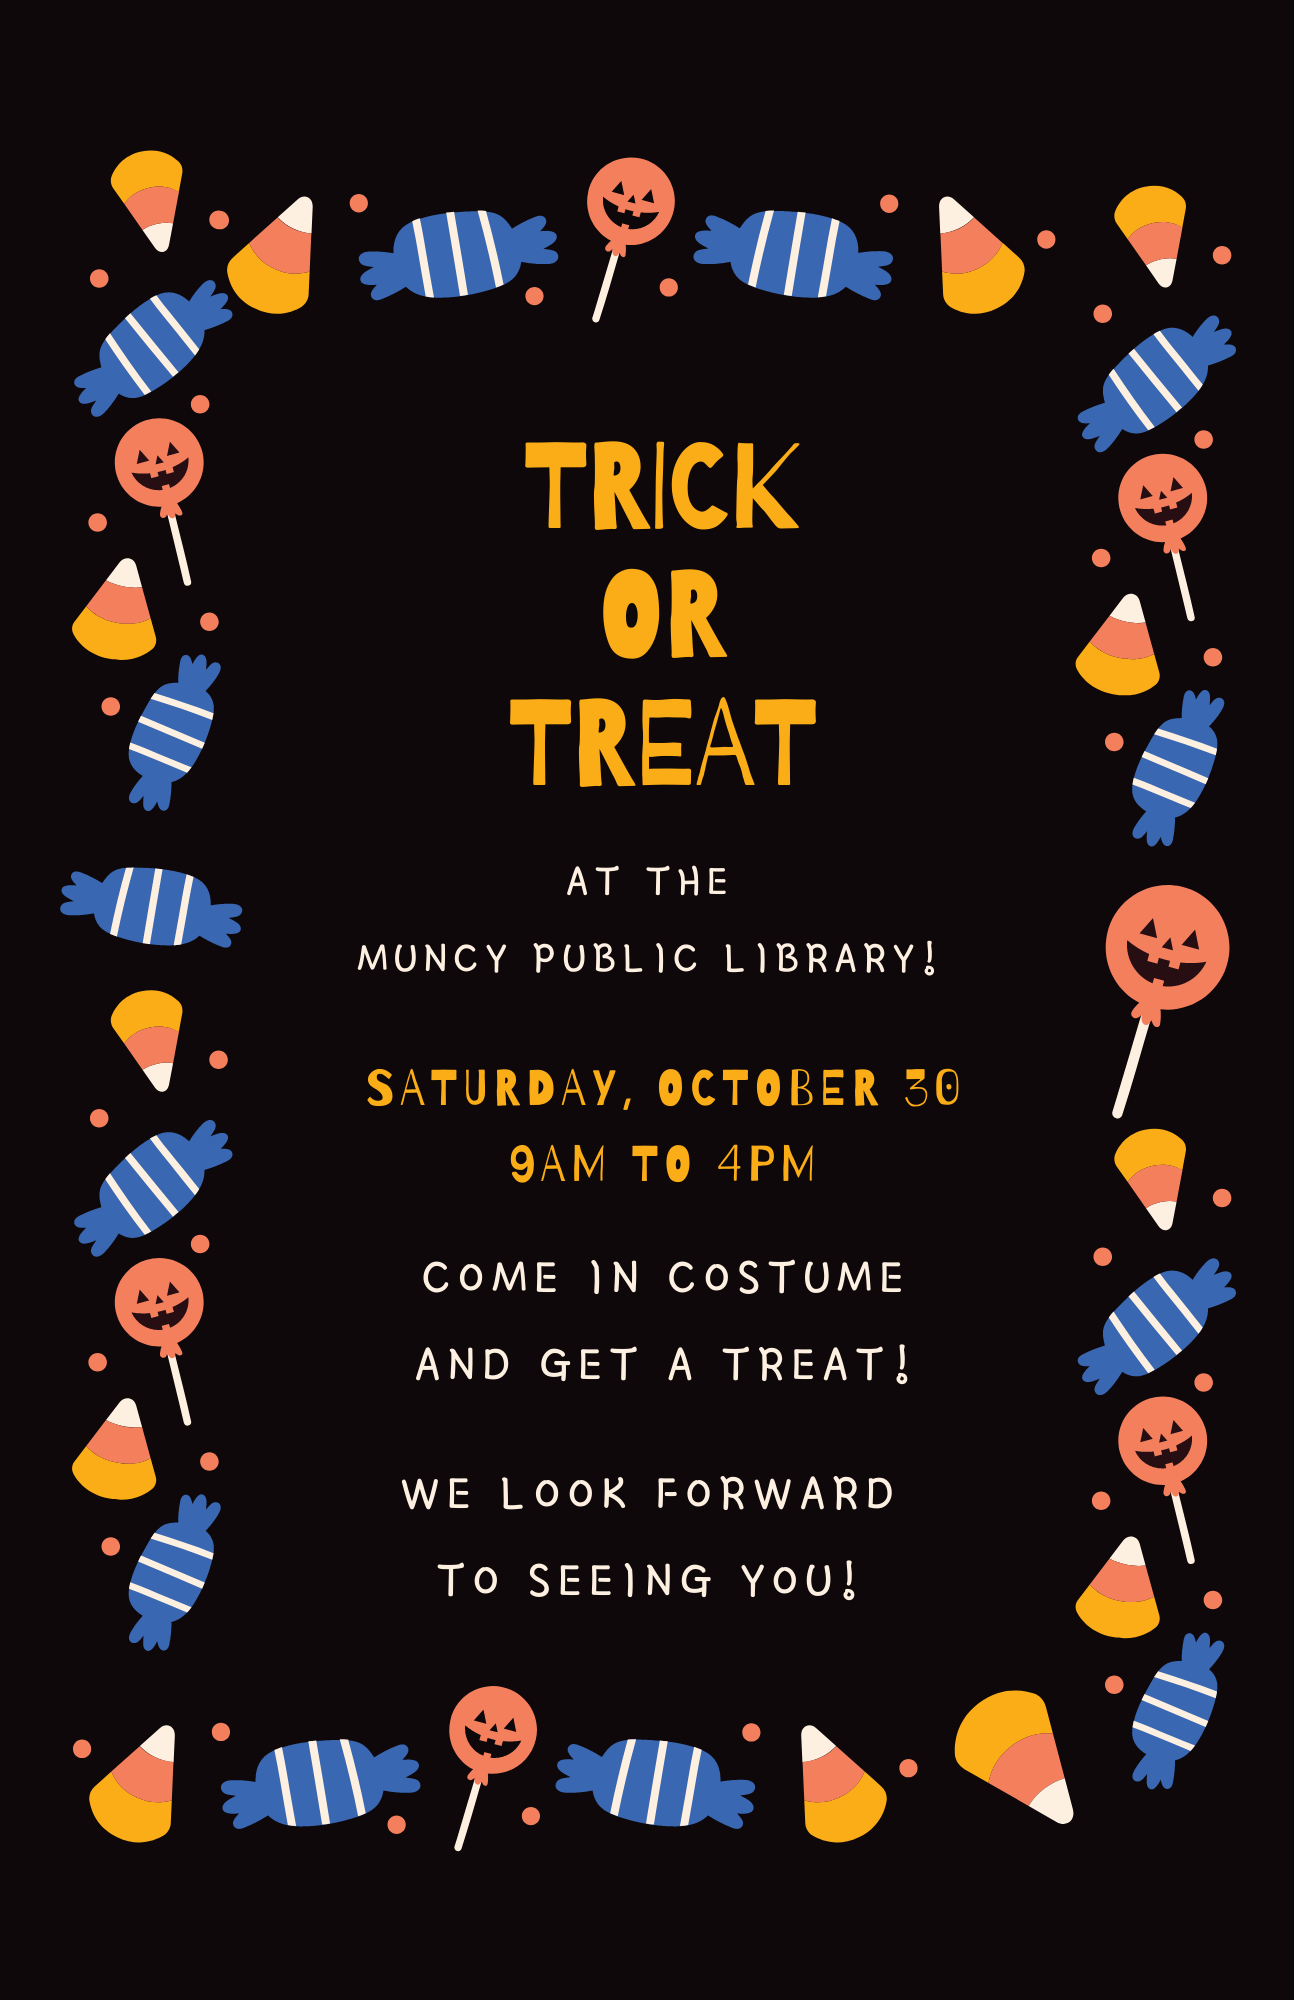 Trick or Treat @ the Library